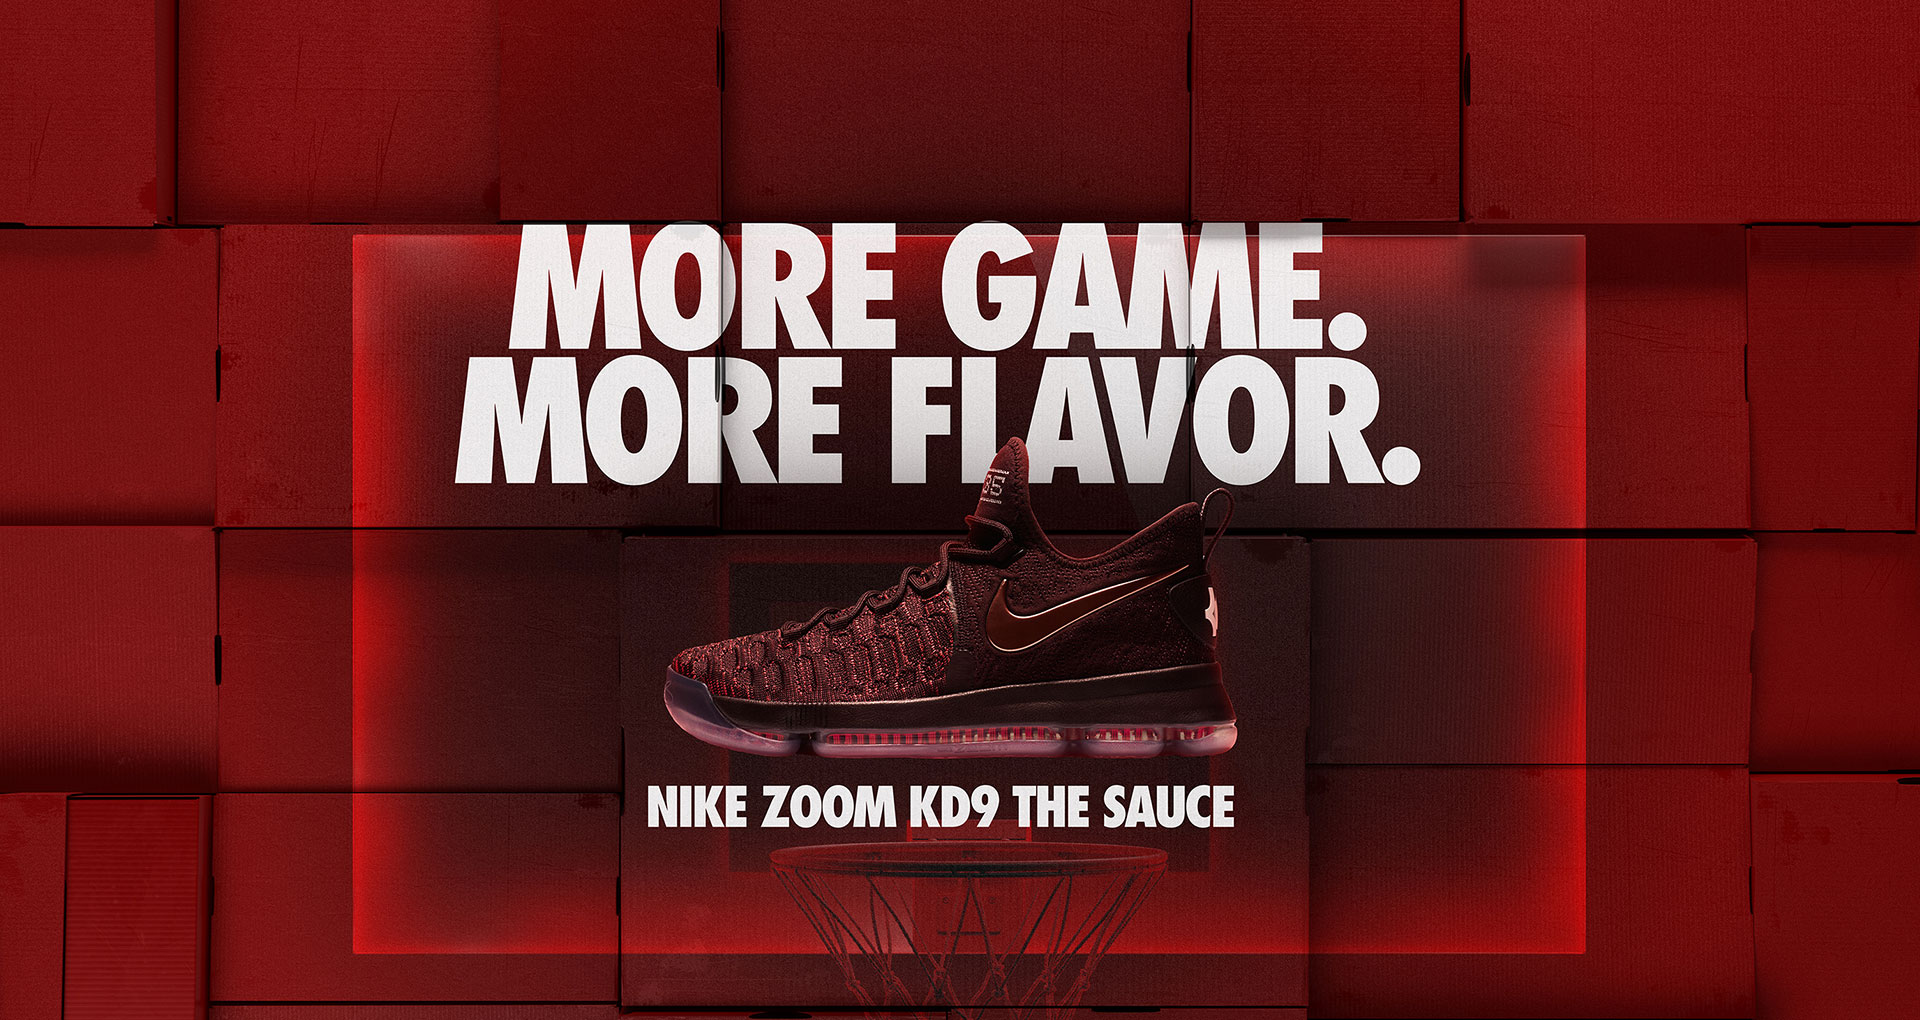 the-nike-kd-9-has-the-sauce-5